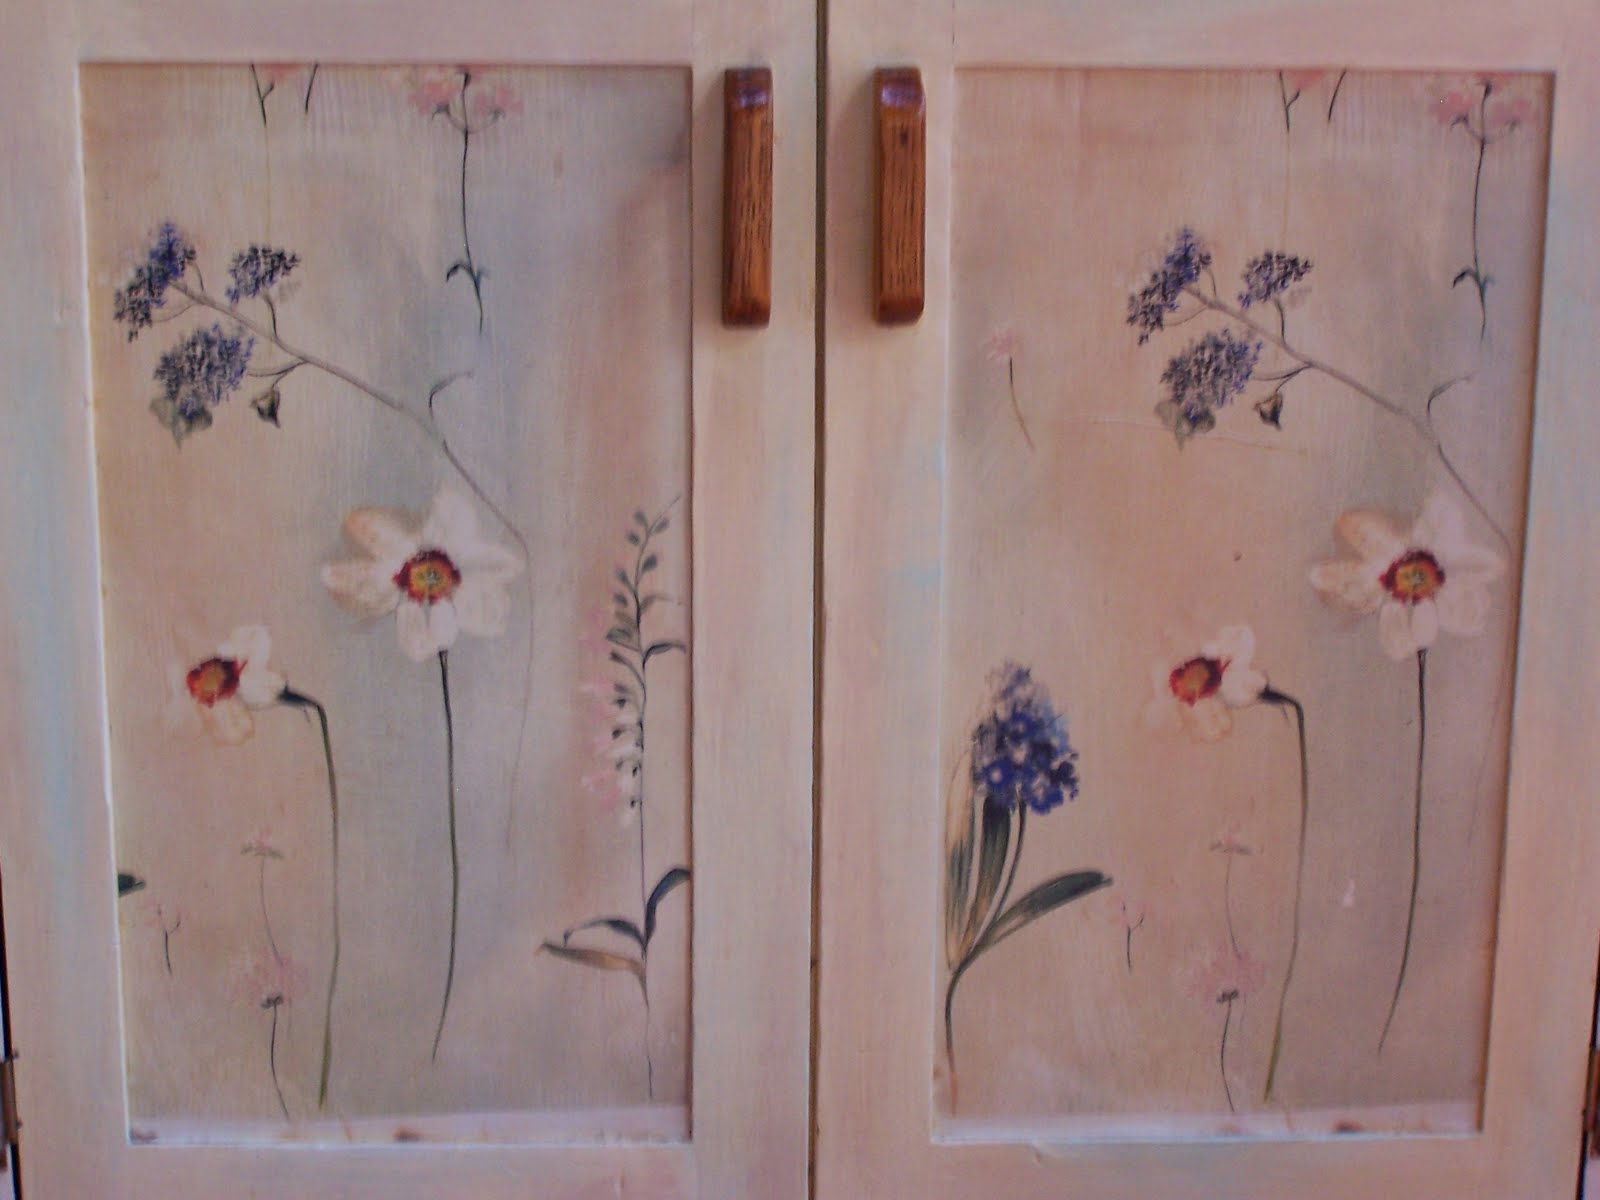 Fabric On Kitchen CabiGlass Doors